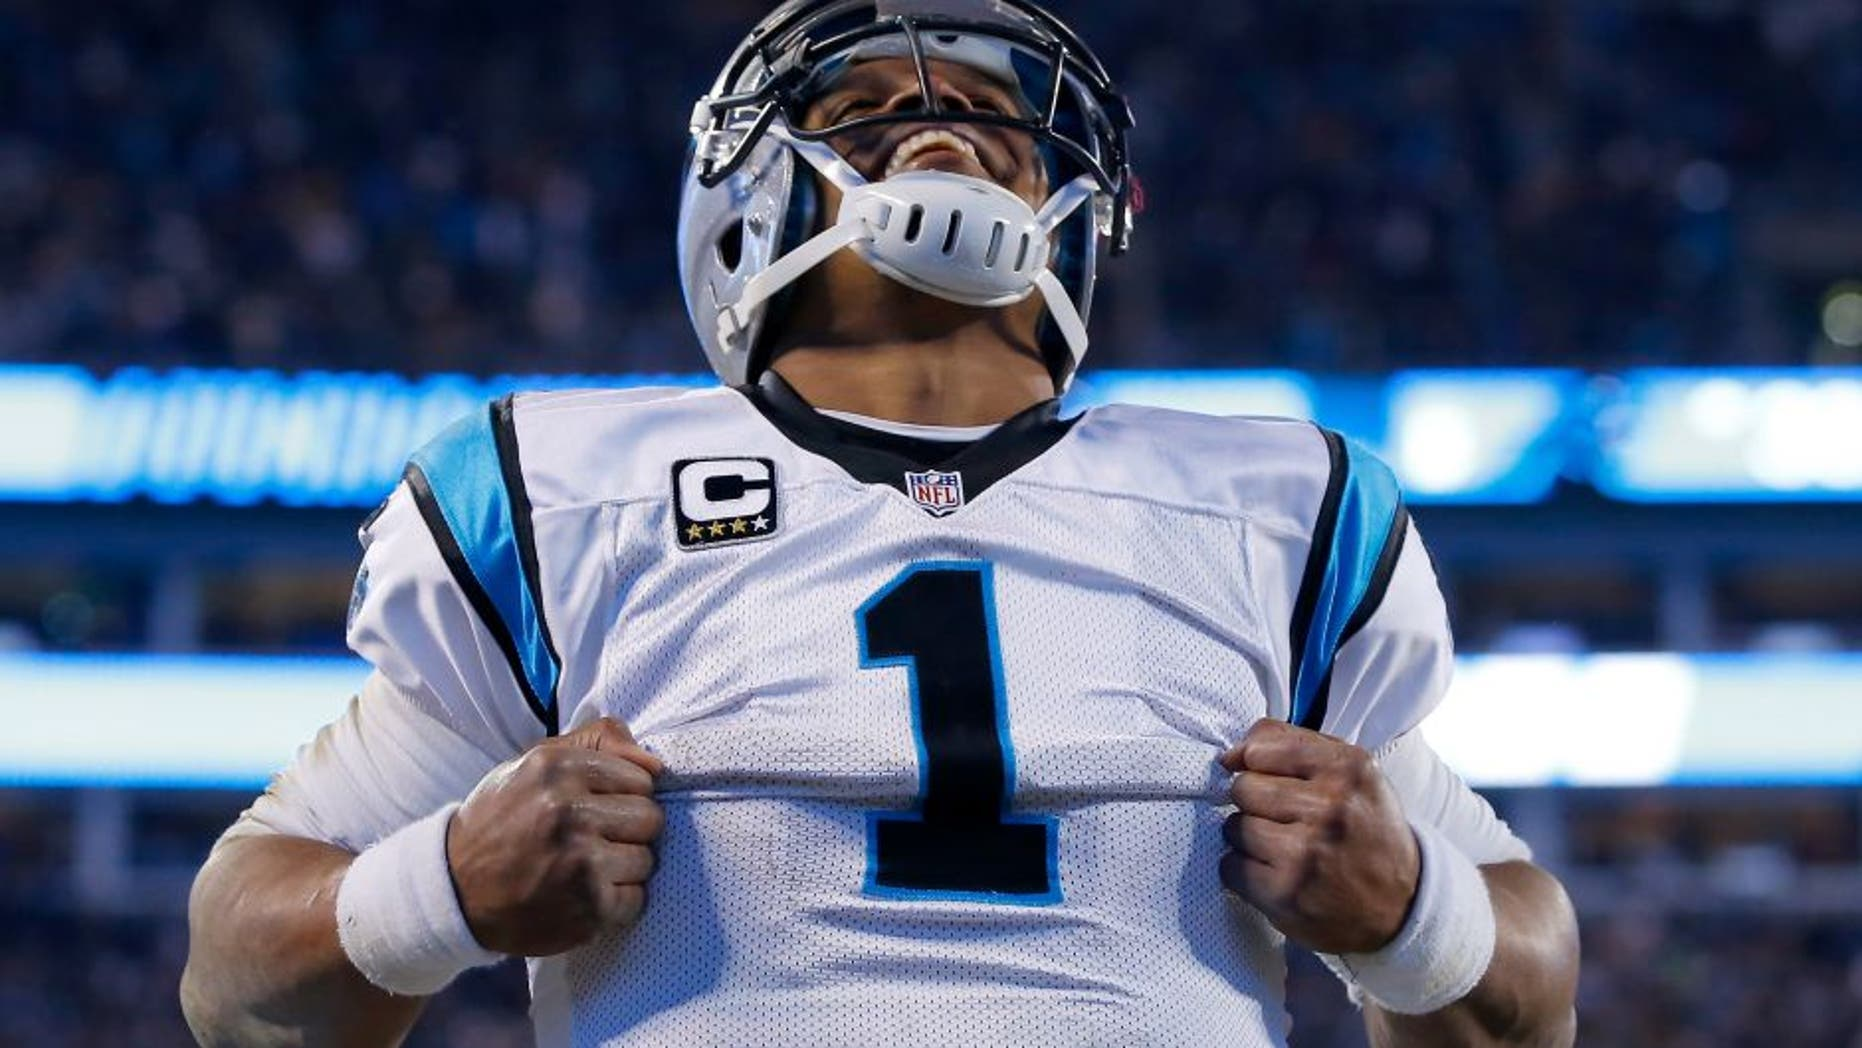 CHARLOTTE, NC - JANUARY 24: Cam Newton #1 of the Carolina Panthers celebrates after scoring a touchdown in the third quarter against the Arizona Cardinals during the NFC Championship Game at Bank of America Stadium on January 24, 2016 in Charlotte, North Carolina. (Photo by Kevin C. Cox/Getty Images)